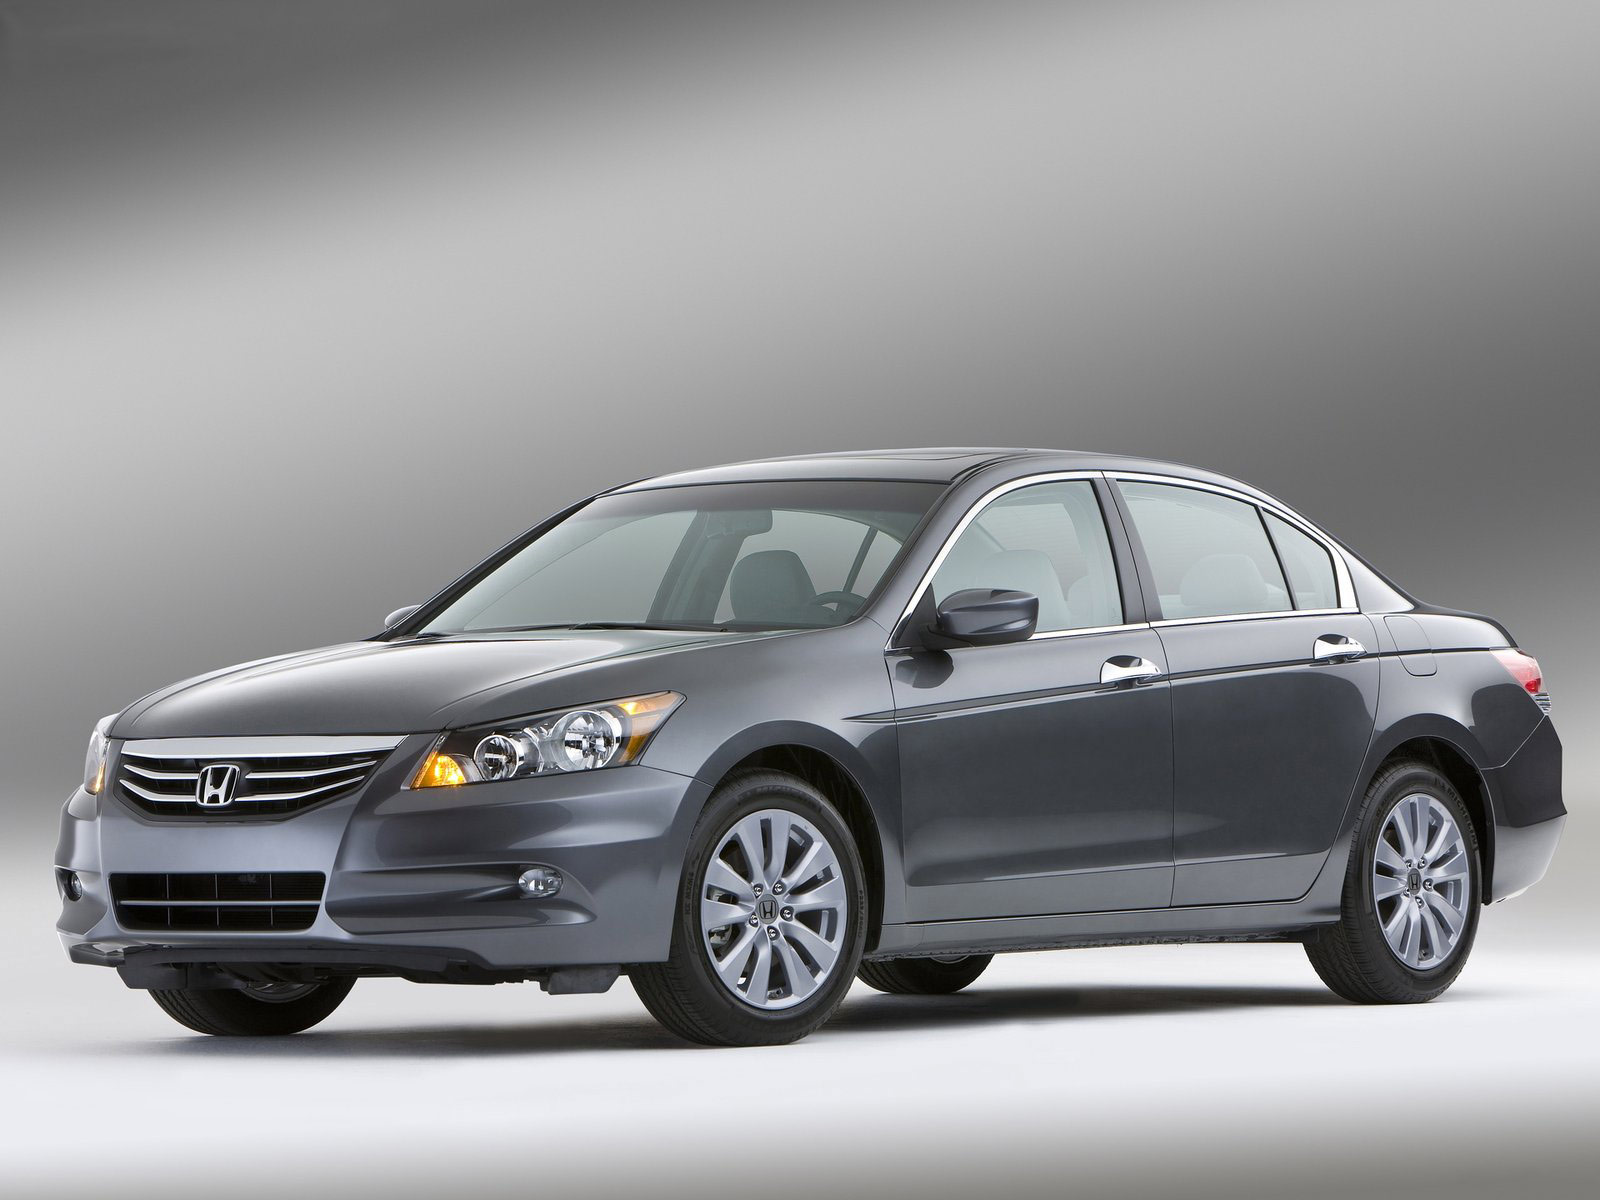 2011 Honda Accord Japan Automobiles Pictures Wallpapers